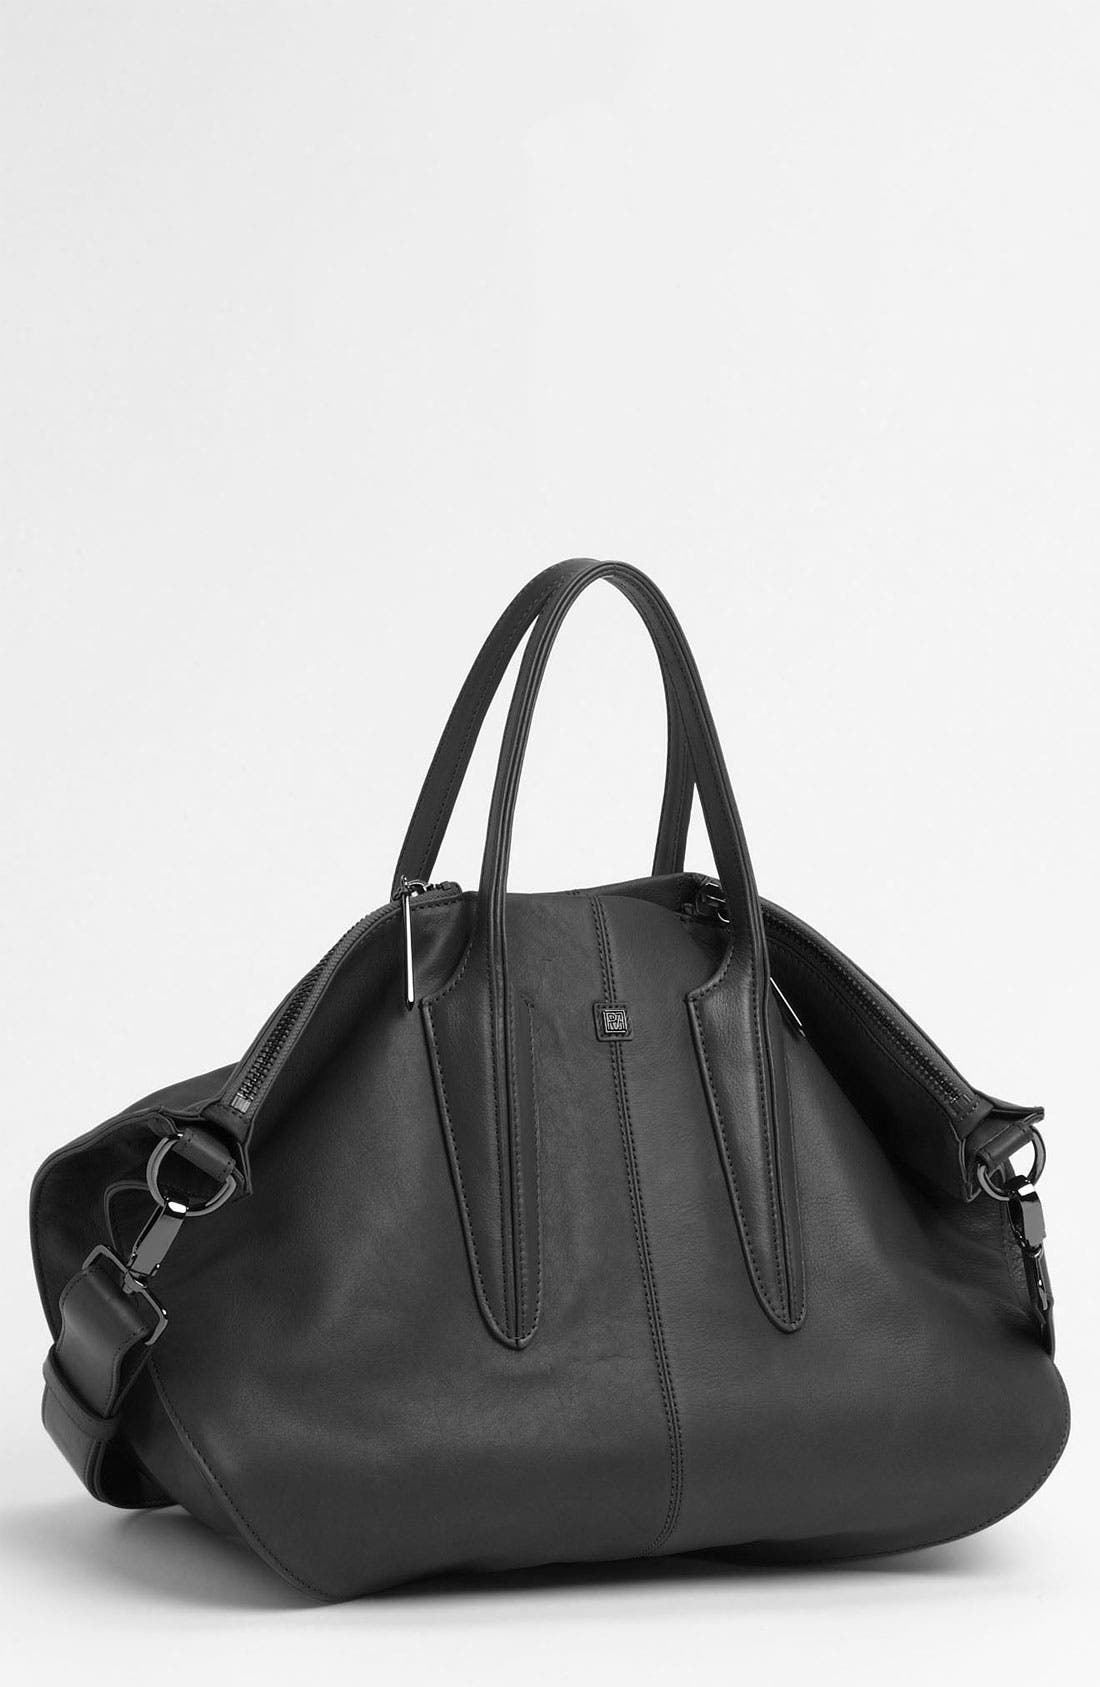 Alternate Image 1 Selected - Pour la Victoire Convertible Satchel